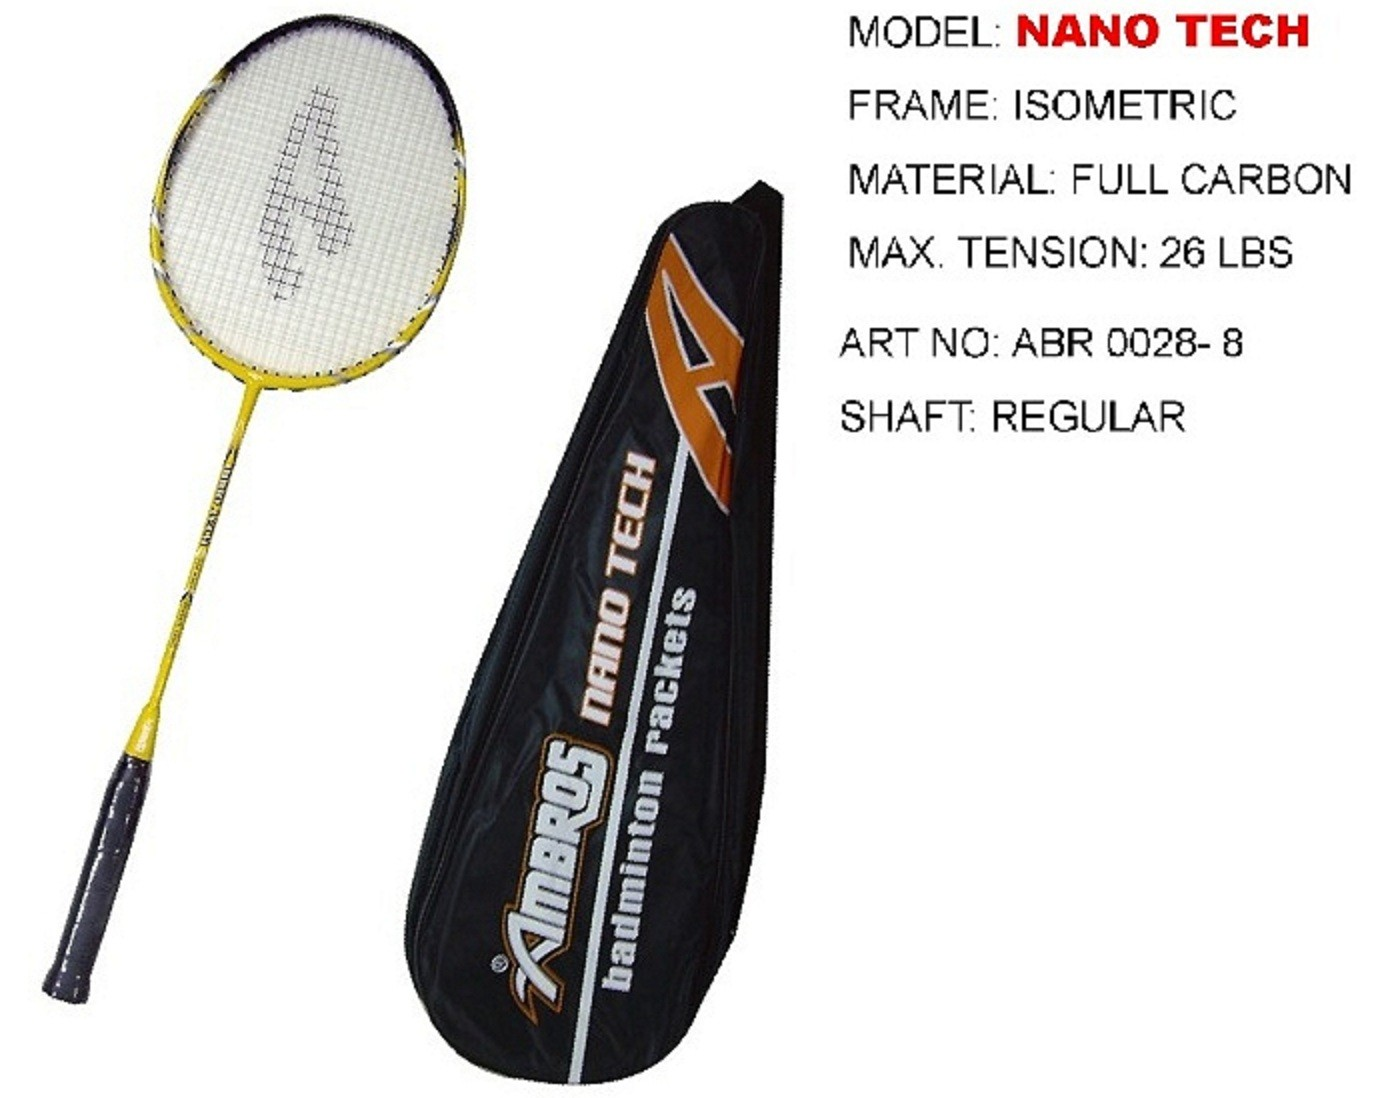 Ambros Badminton Racket Nano Tech